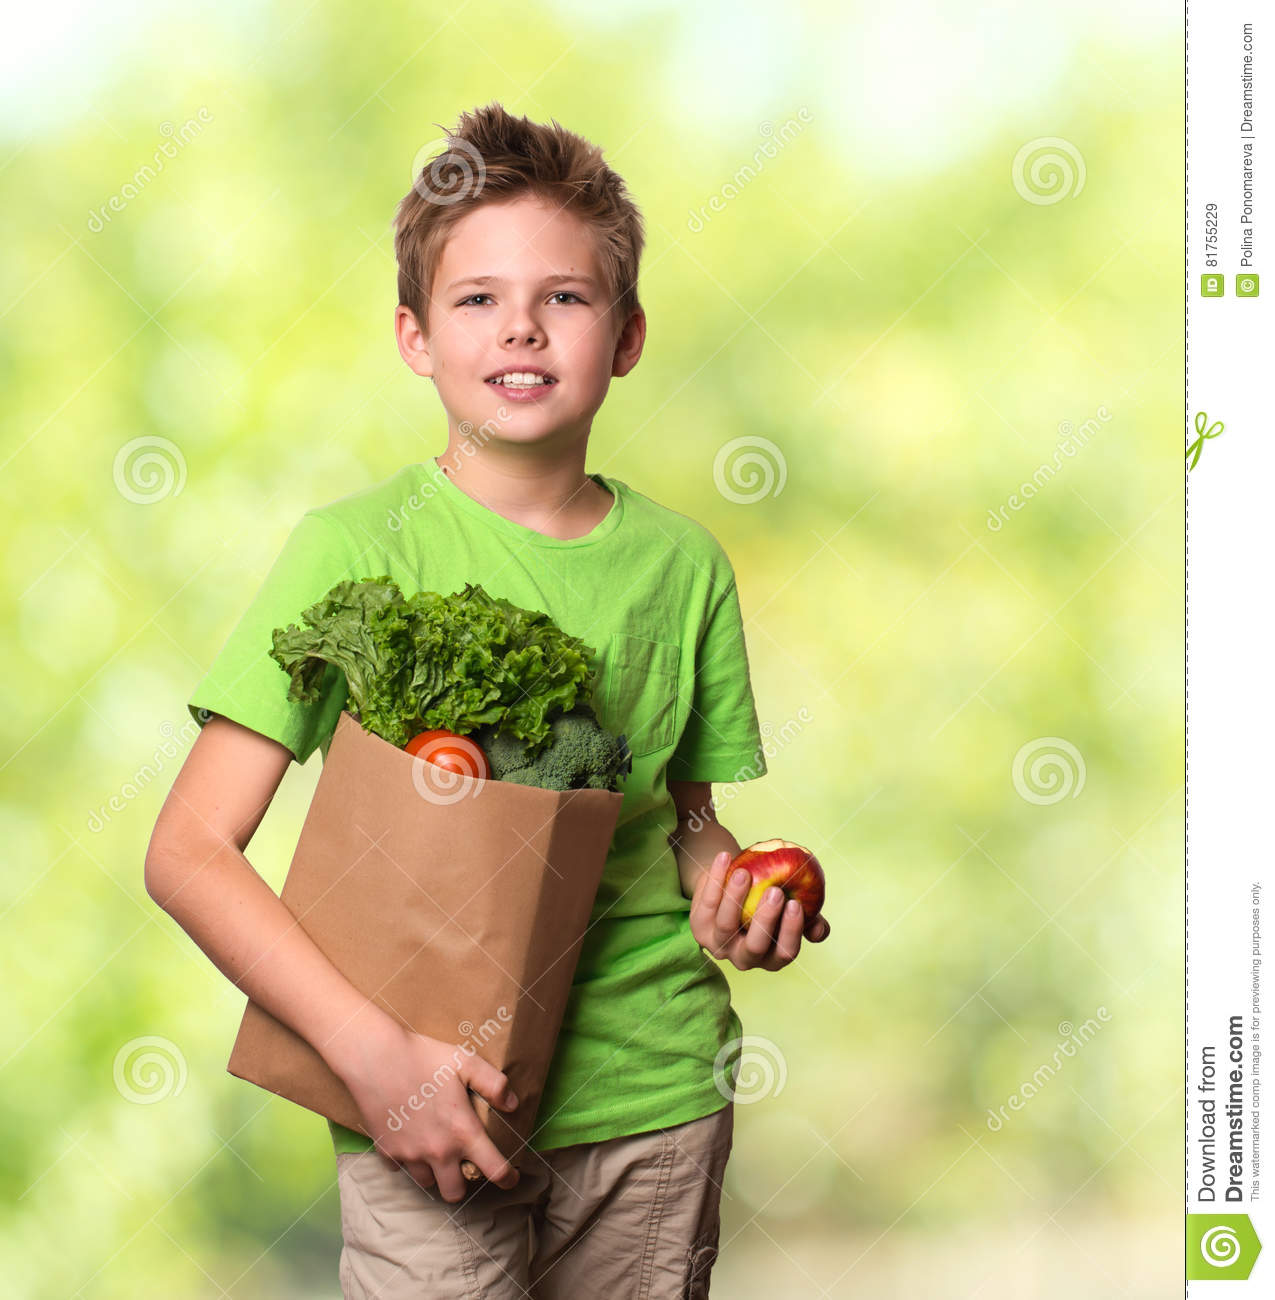 essay on pleasures of childhood 1 healthy eating habits essay healthy eating plan - 1559 words diet to the recommendations received by the food guide.